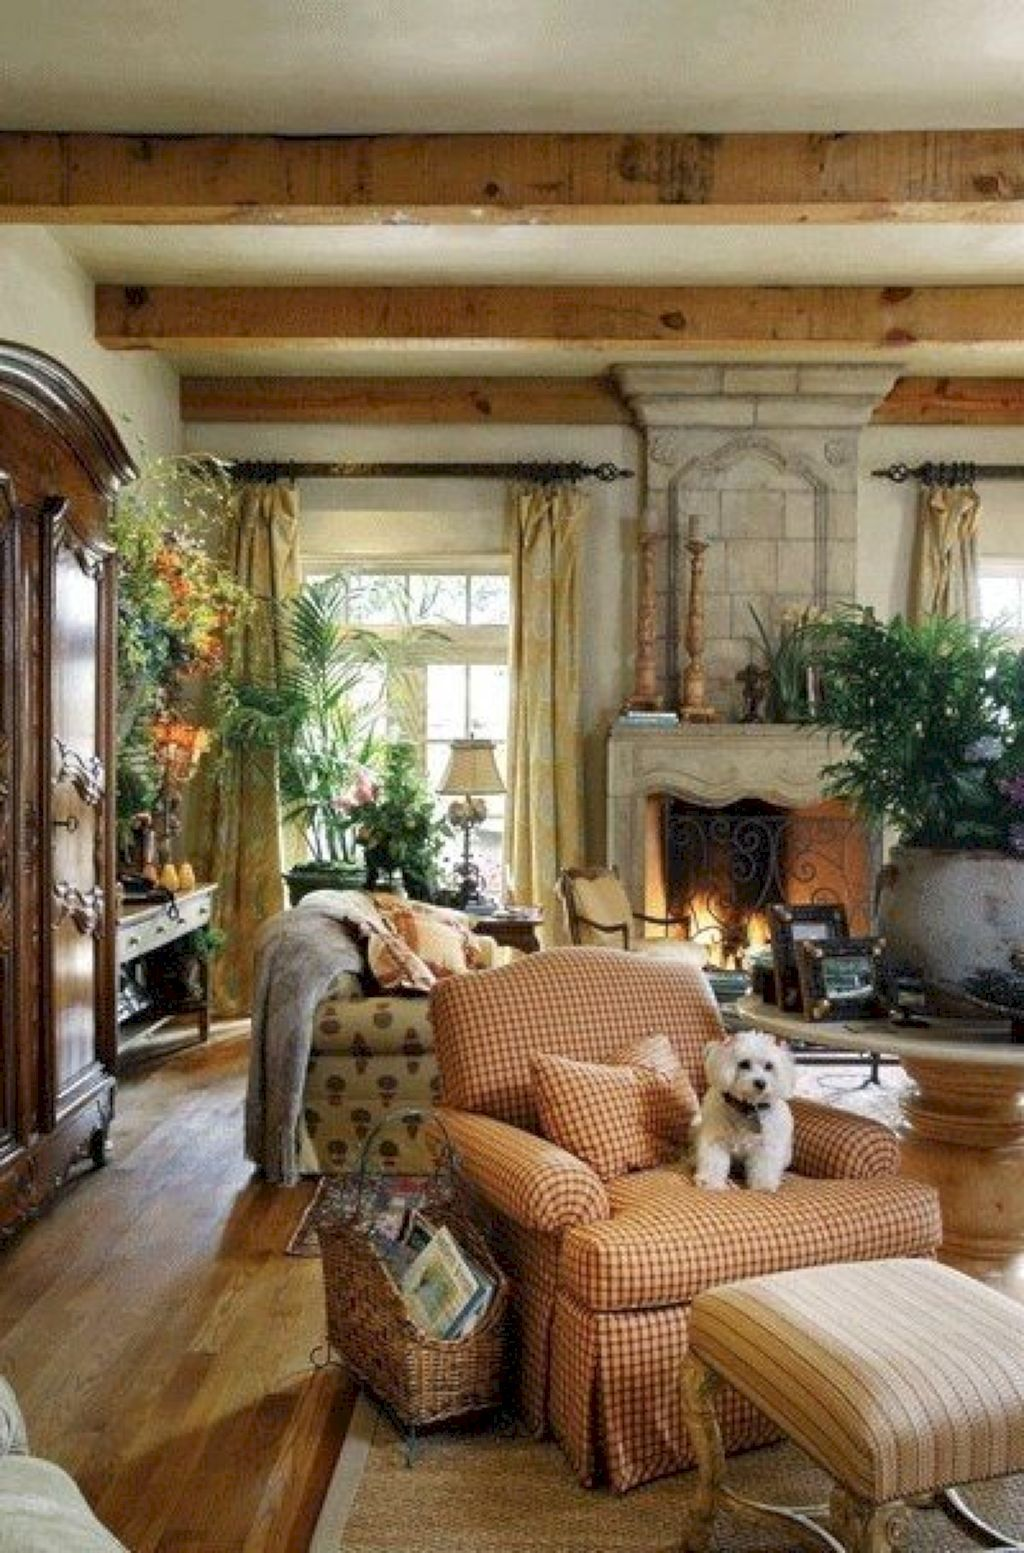 French Country Home Interior Design: Pin By Dawn Chiko On French Country ️ ️ ️